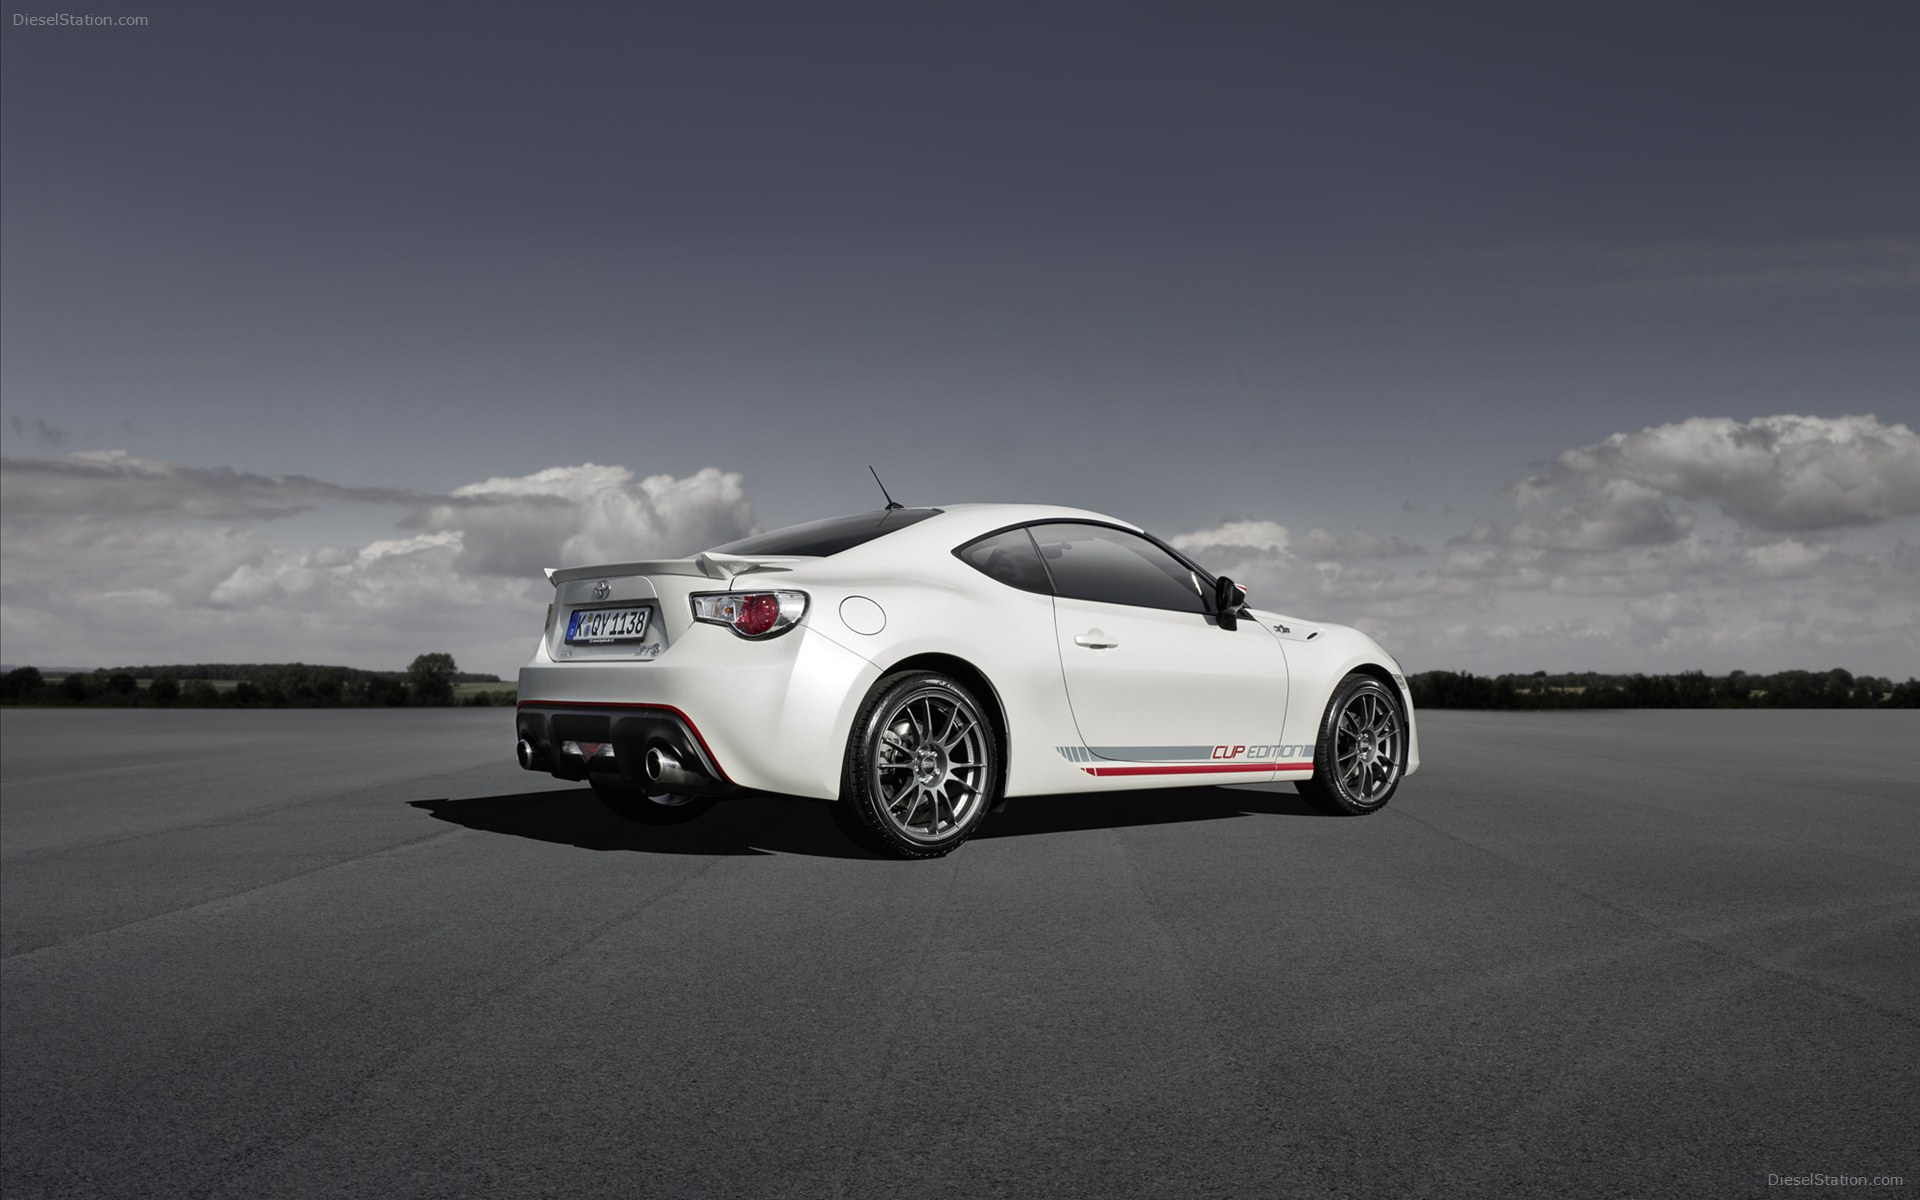 Toyota GT86 Cup Edition 2013 Widescreen Exotic Car Image 1920x1200